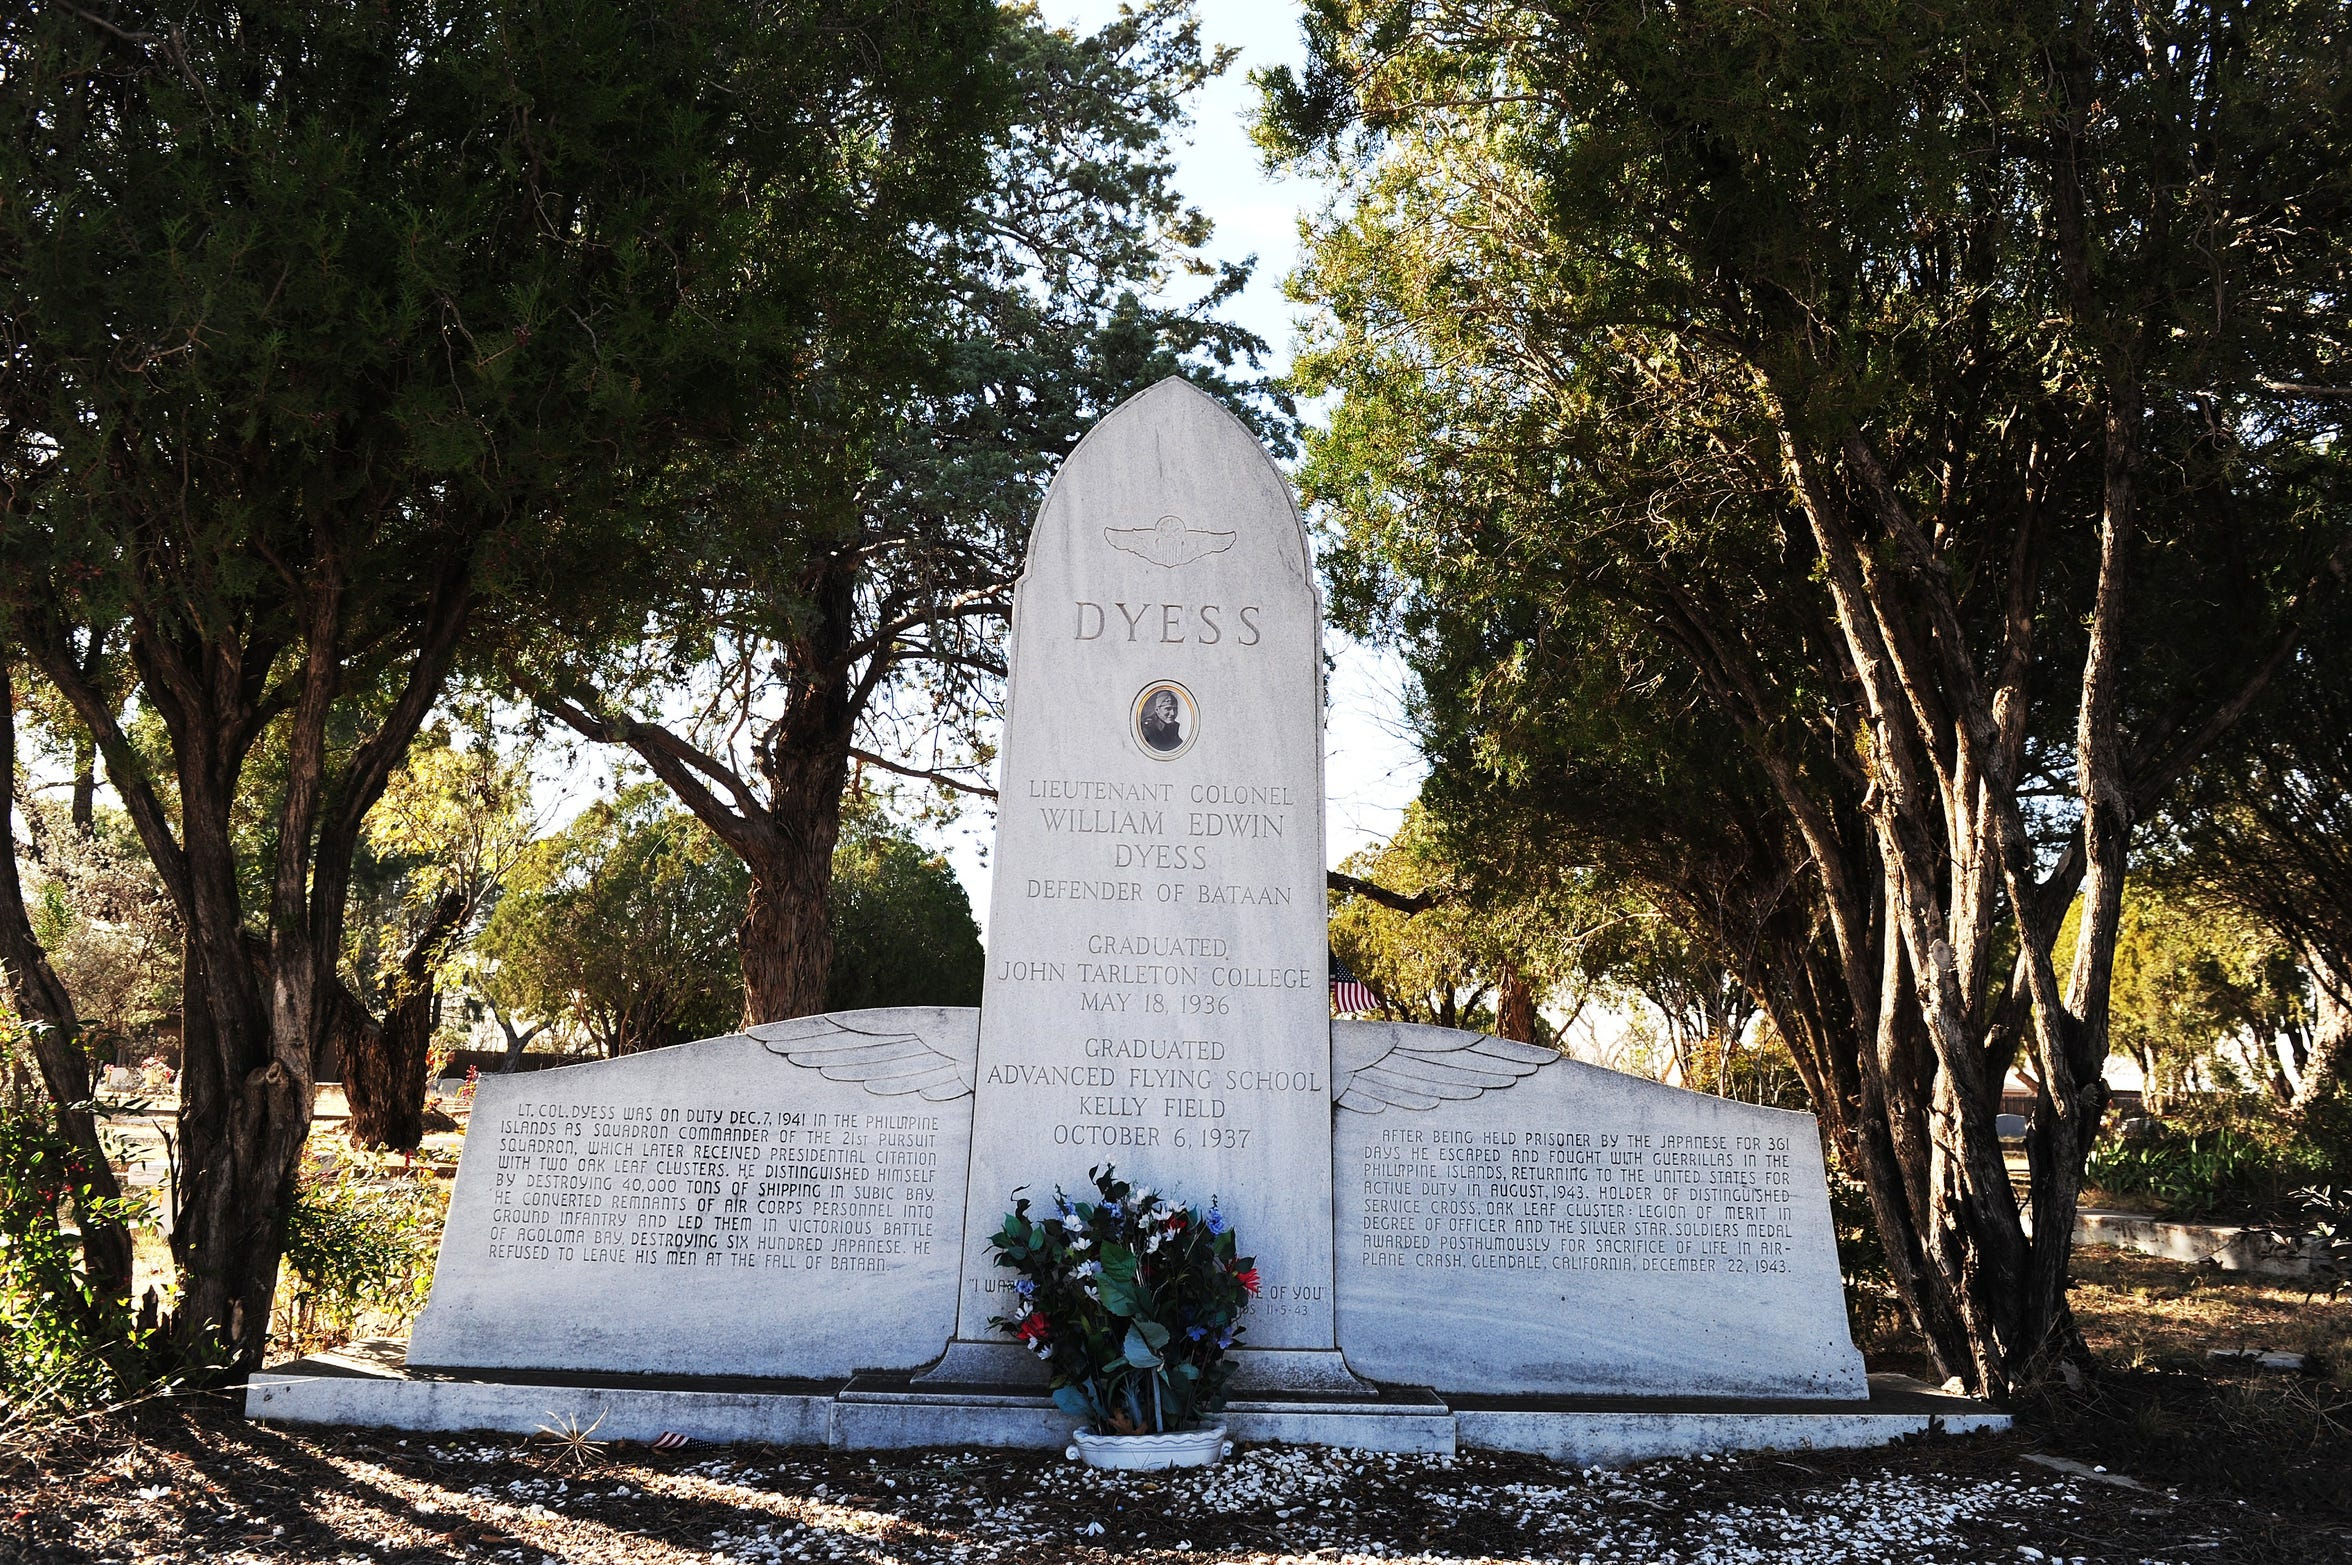 The grave of Lt. Col. William Edwin Dyess in the Albany, Texas, cemetery.